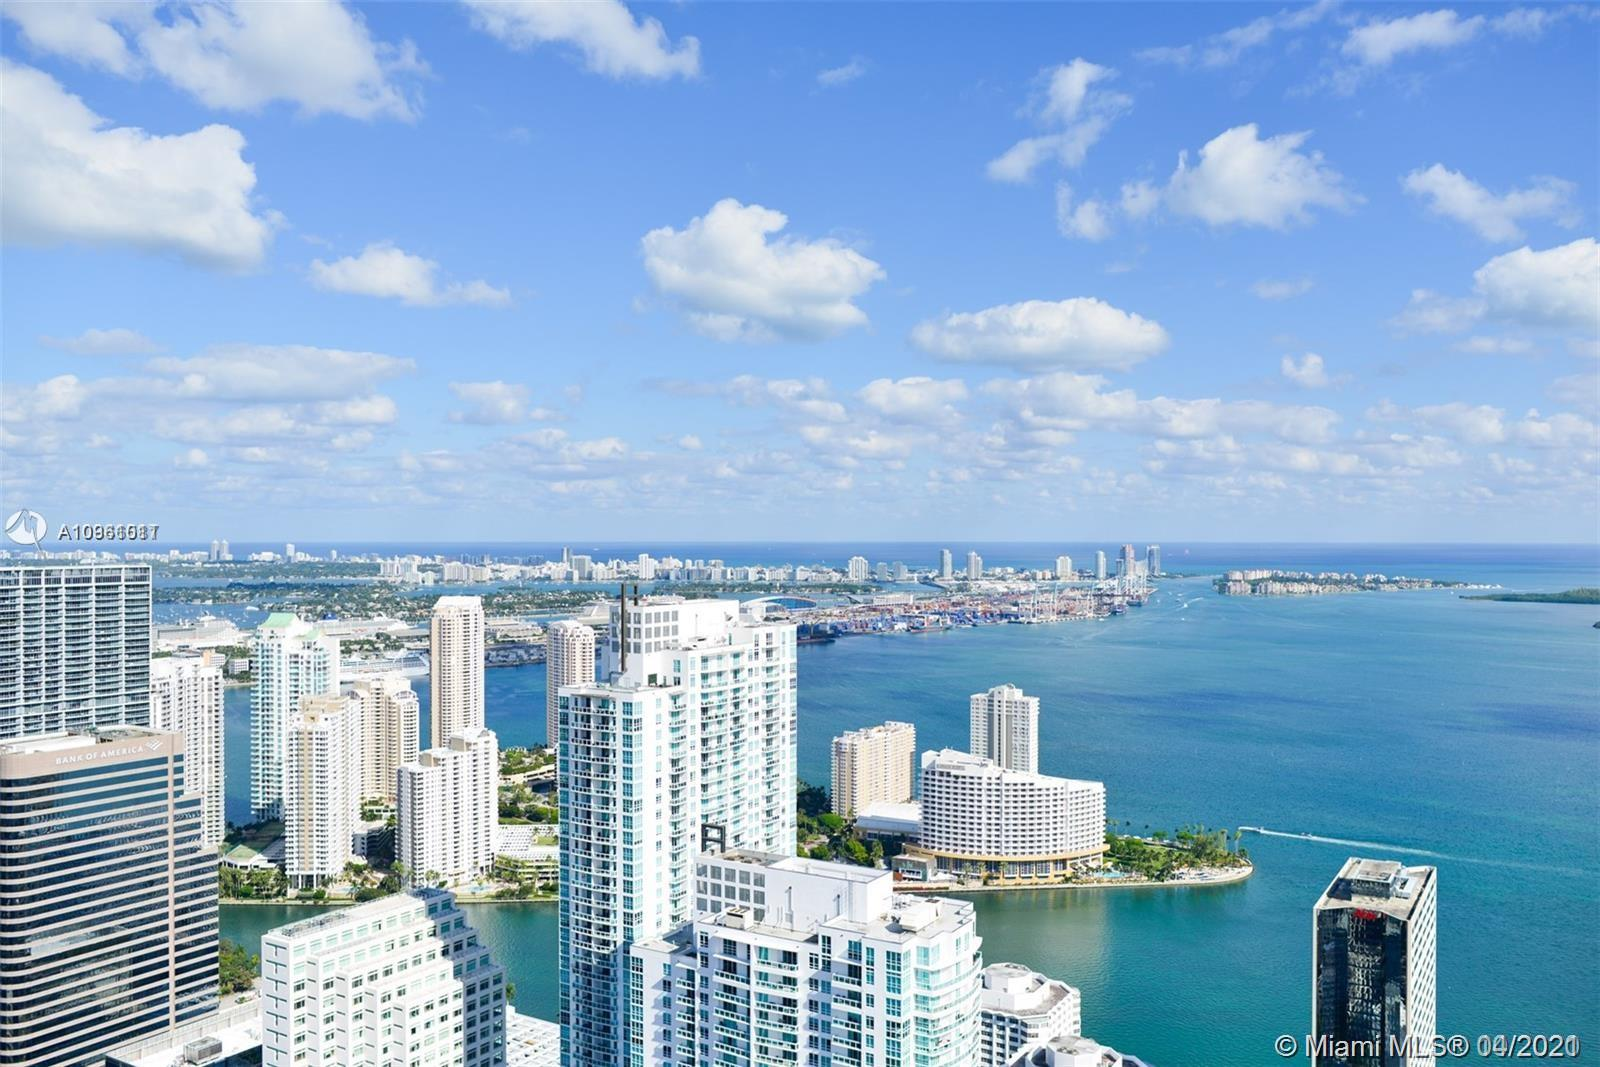 Brickell FlatIron #PH6002 - 1000 Brickell Plz #PH6002, Miami, FL 33131